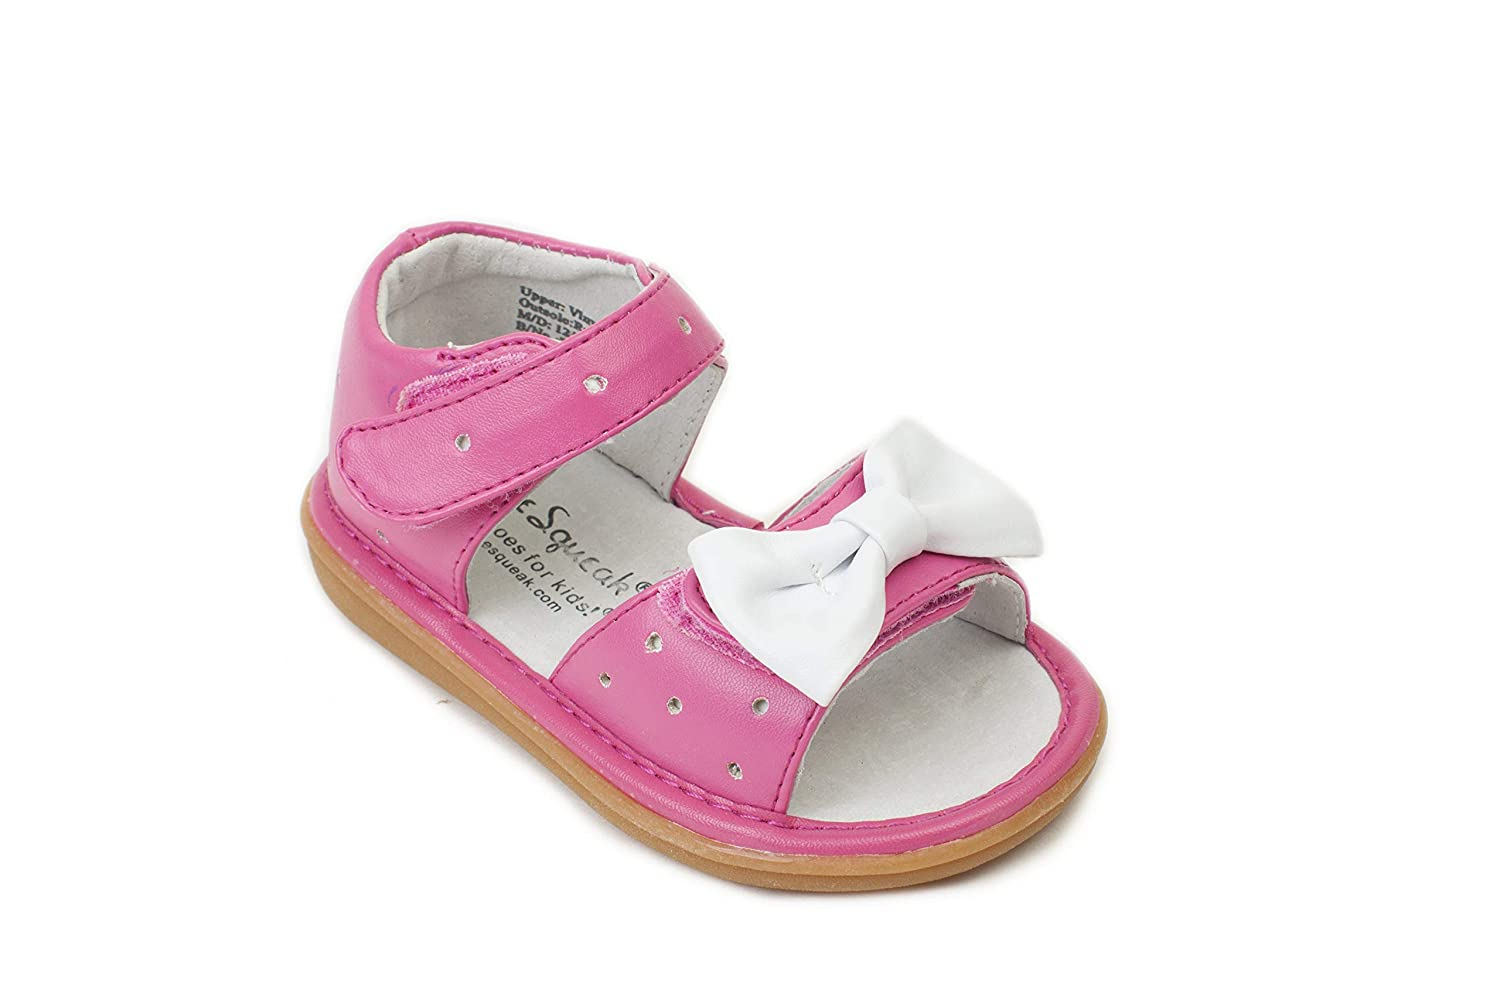 premium selection 9f87a a8d5a Amazon.com   Wee Squeak Stella Hot Pink Sandal Toddler Squeaky Shoe    Sandals